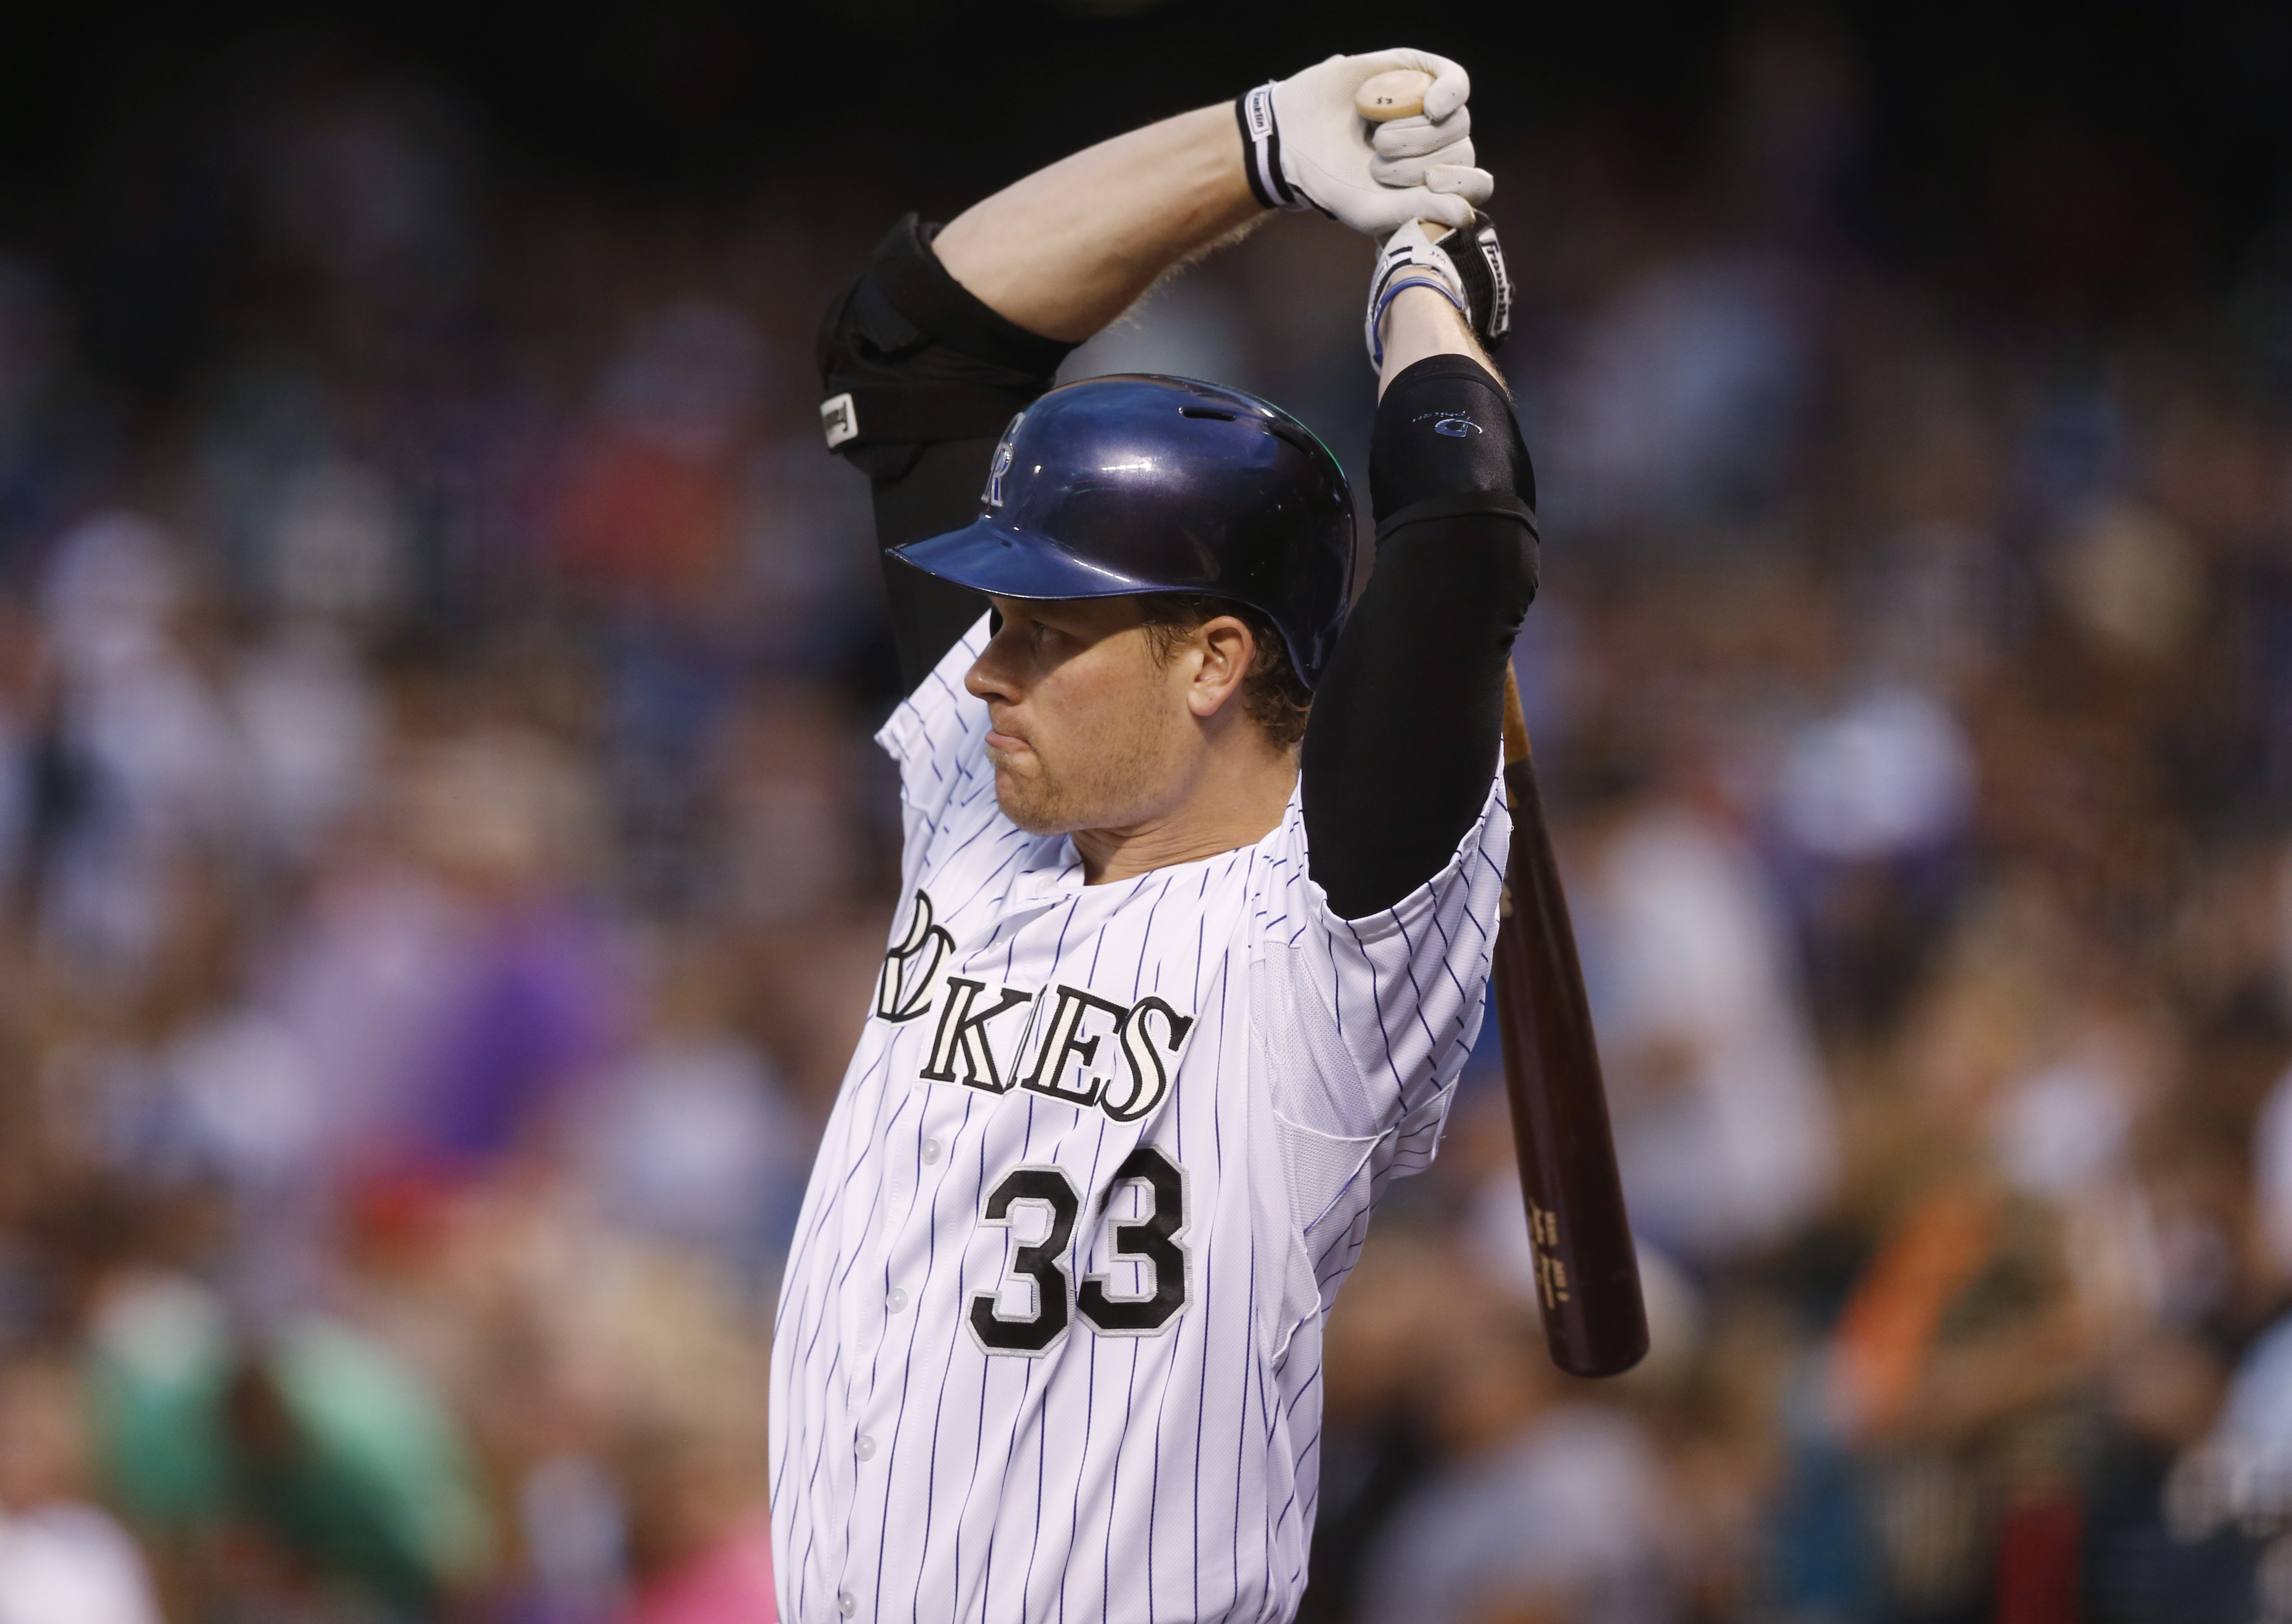 Colorado Rockies' Justin Morneau waits in the on-deck circle to bat against the San Francisco Giants in the first inning of a baseball game Friday, Sept.. 4, 2015, in Denver. Morneau was making his first appearance on the field for the Rockies since being